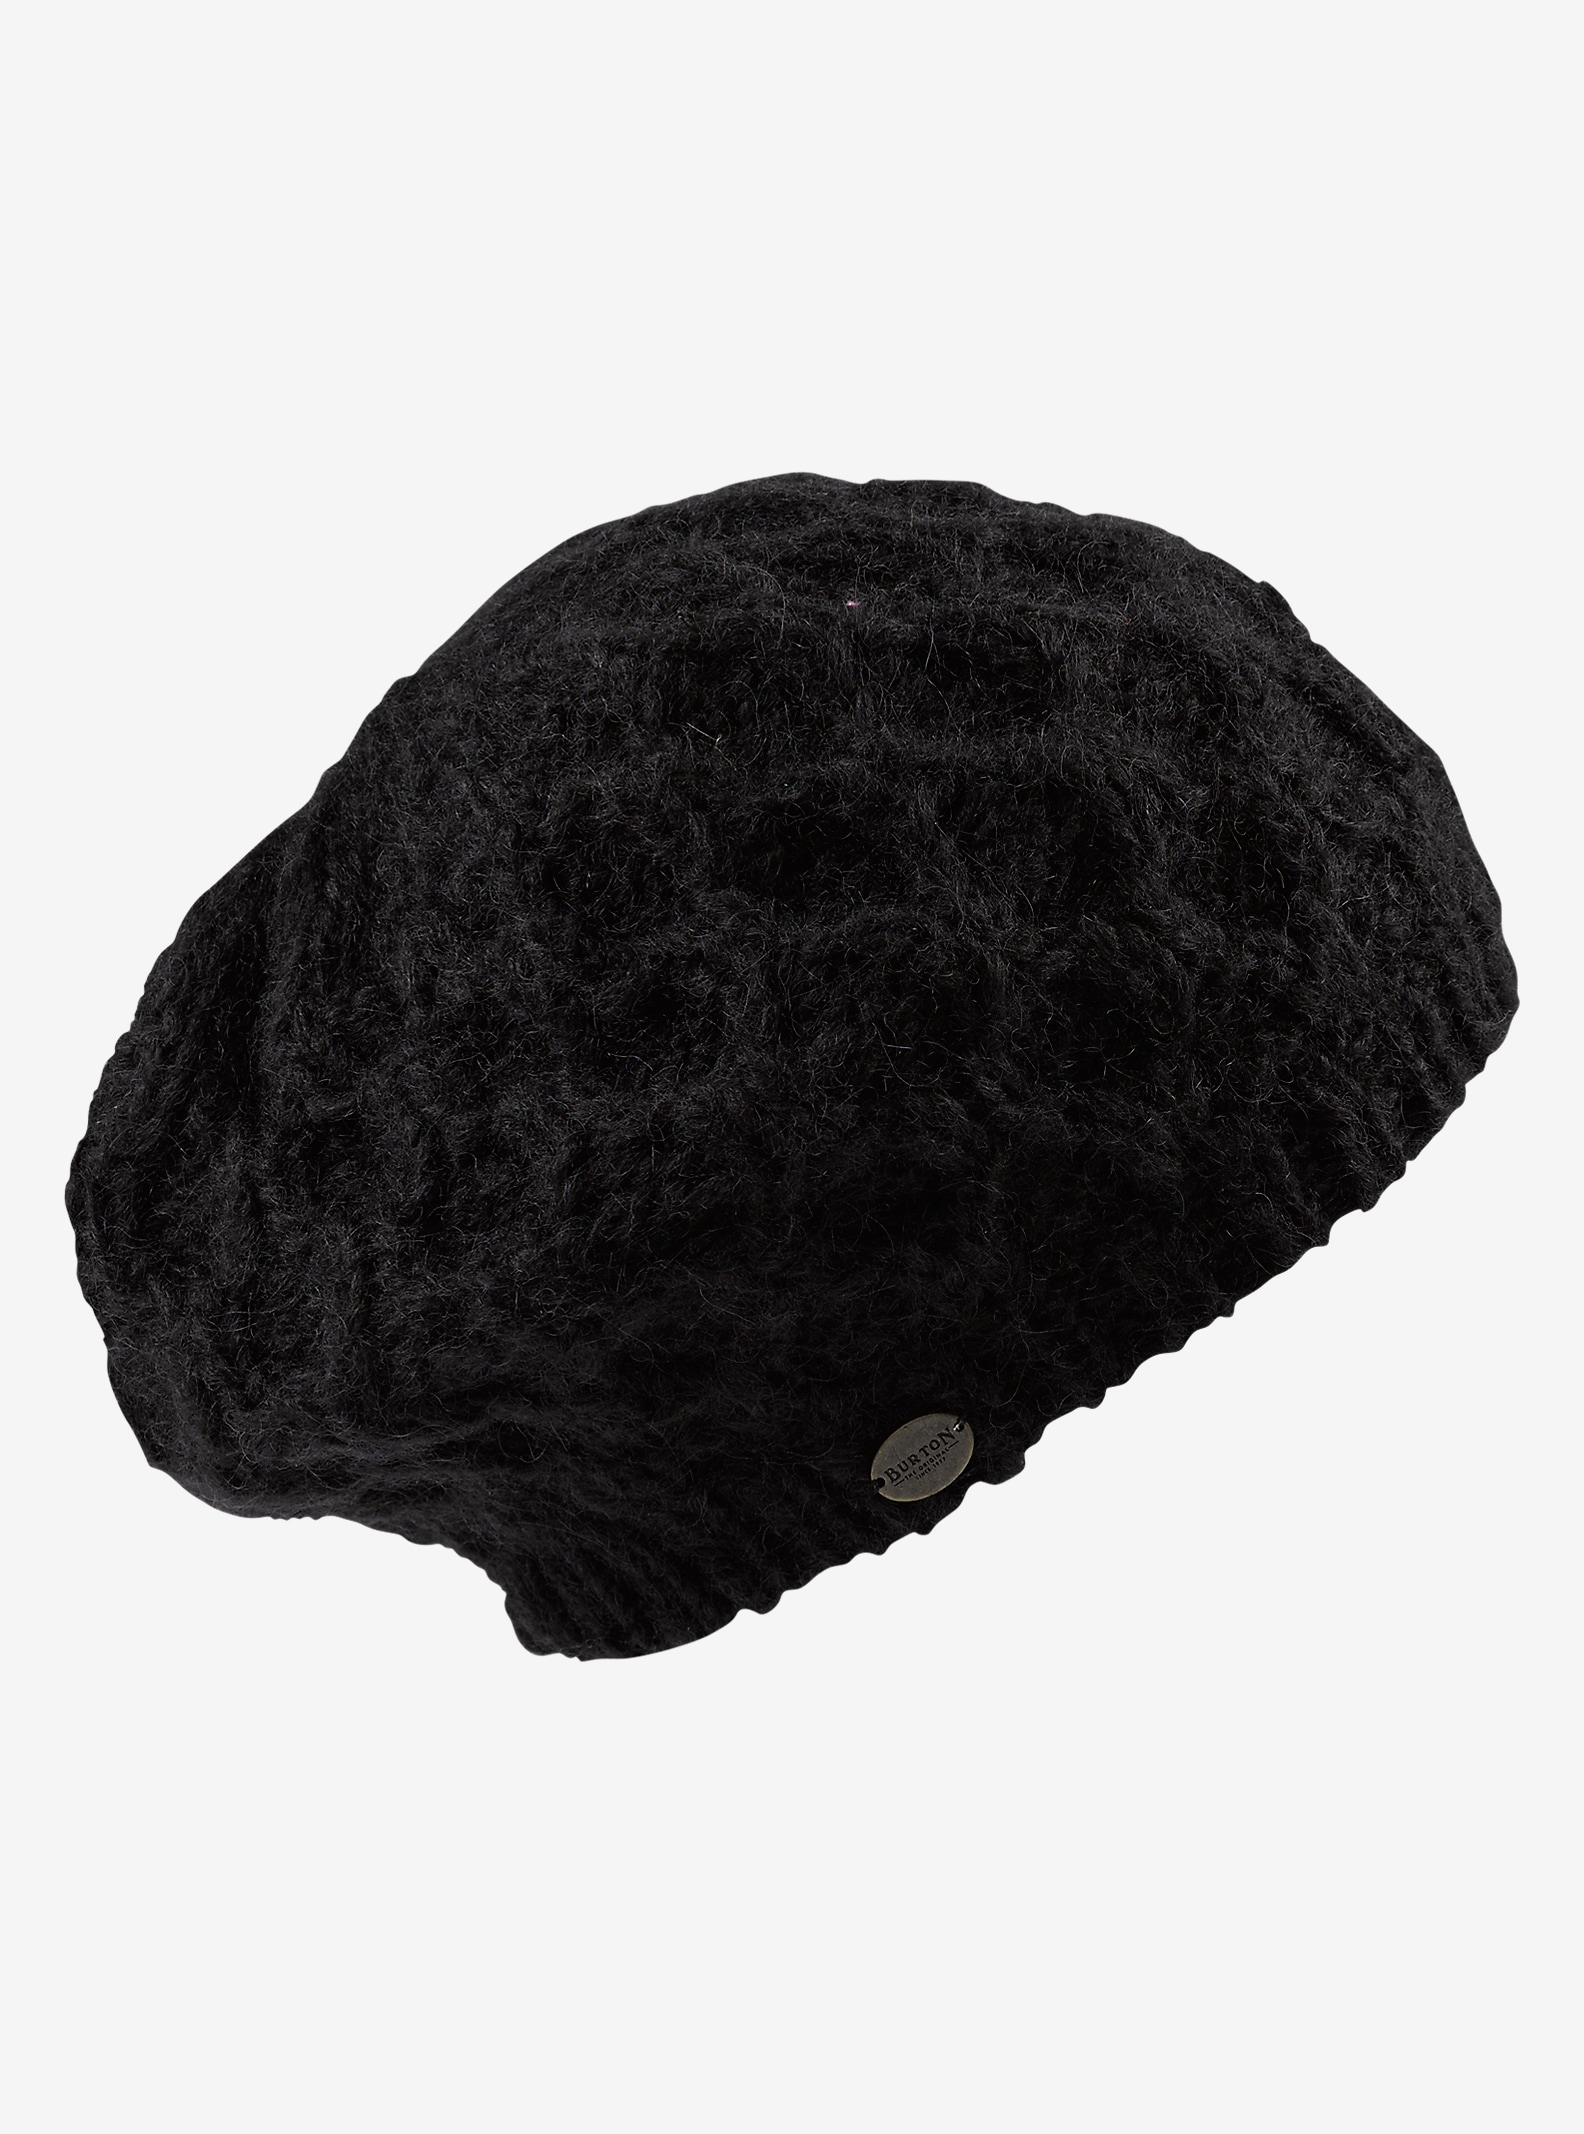 Burton Honeycomb Beanie shown in True Black